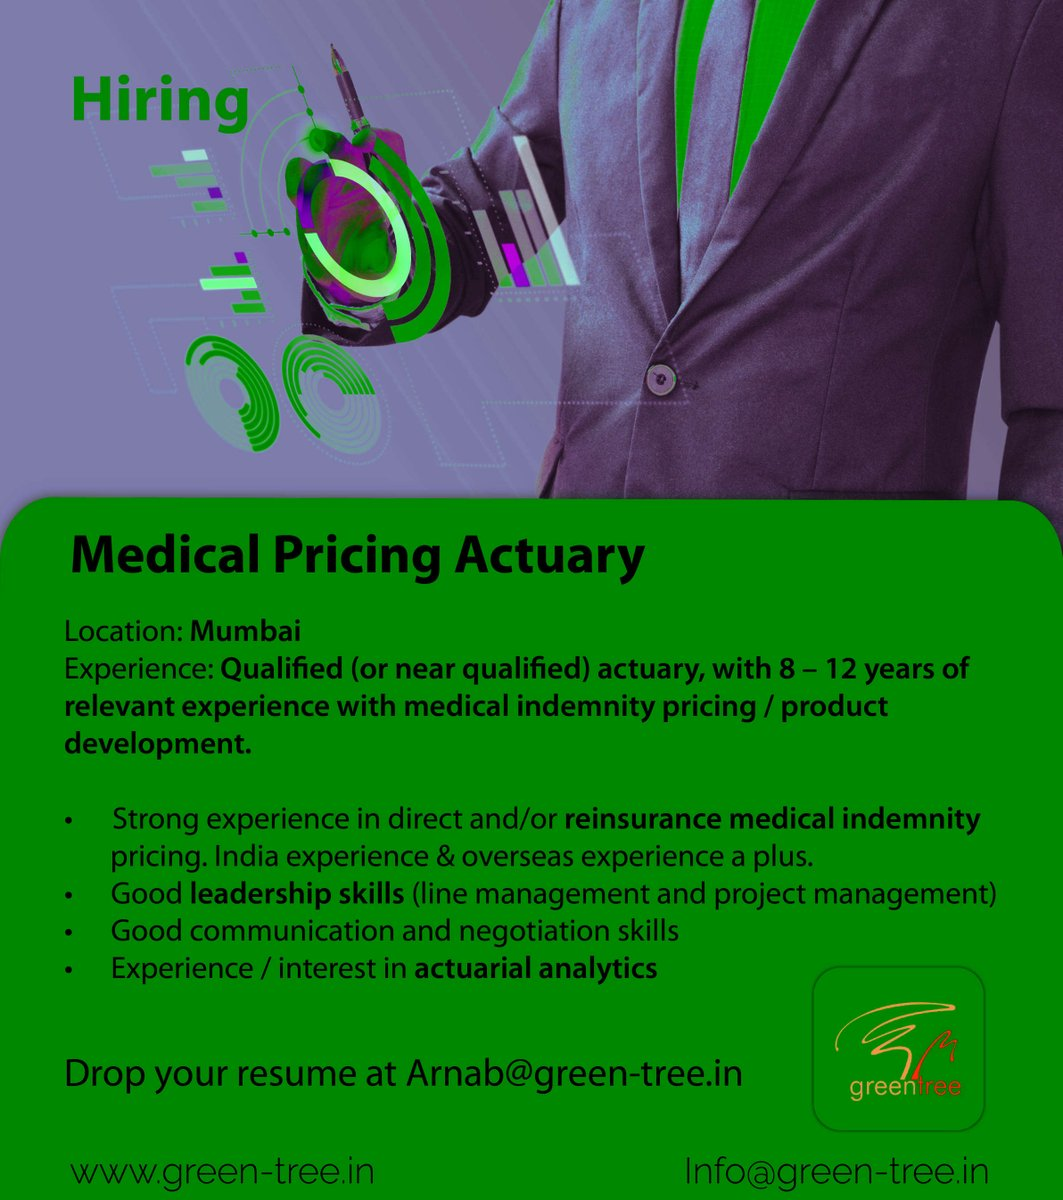 #WeareHiring Medical Pricing Actuary  #Comment Interested  Follow #Greentree for daily job updates! #actuaryjobs #lifeactuarial #riskmanagement #actuarialjobs #actuarialscience #actuariat #capitalmodeling #valuation #insuranceclaim #bankingandfinance #dataanalytics #spss https://t.co/61XrGvh03b